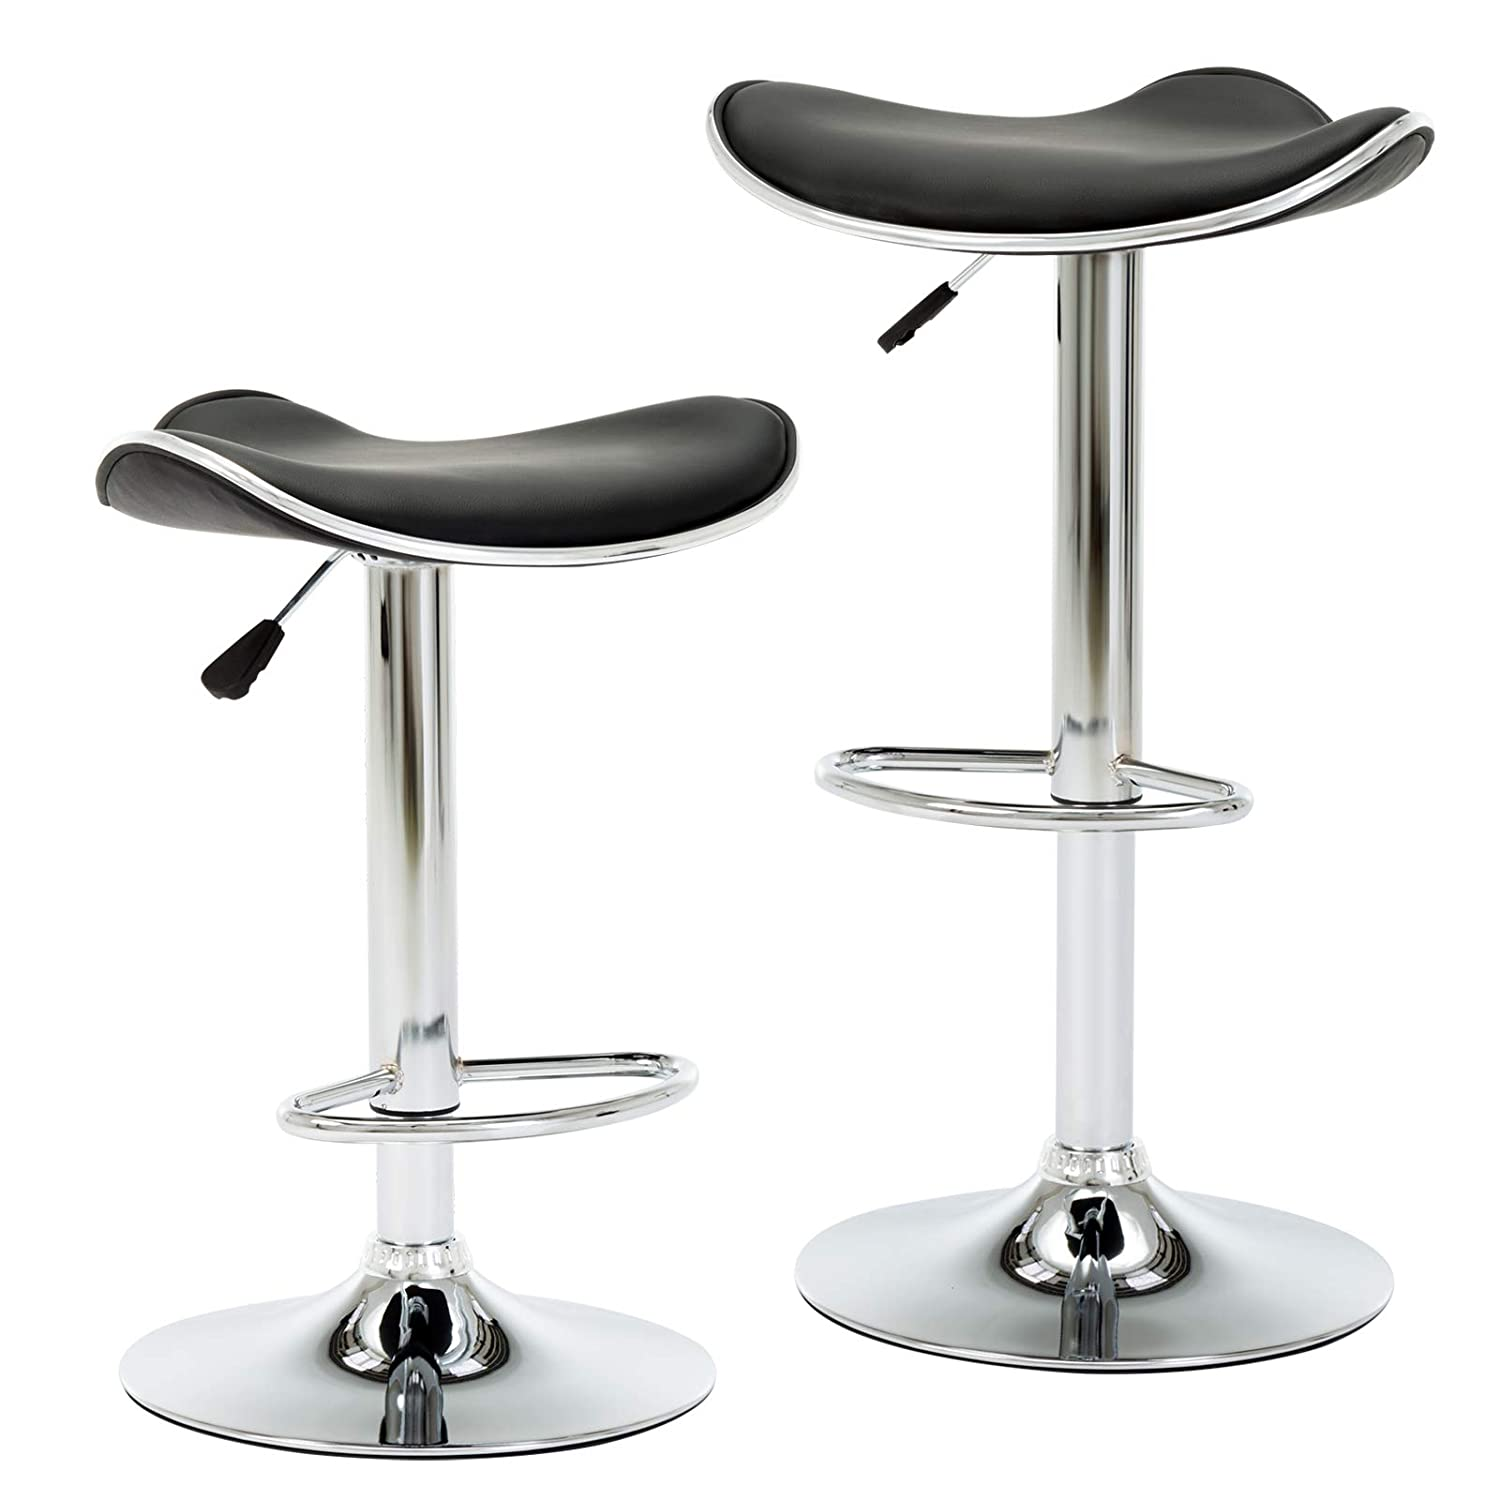 IntimaTe WM Heart Modern Style Height Adjustable Swivel Faux Leather Bar Stools, Set of 2 with Foot Pedal and Base for Bar, Counter, Kitchen and Home, Black LIANSHENG